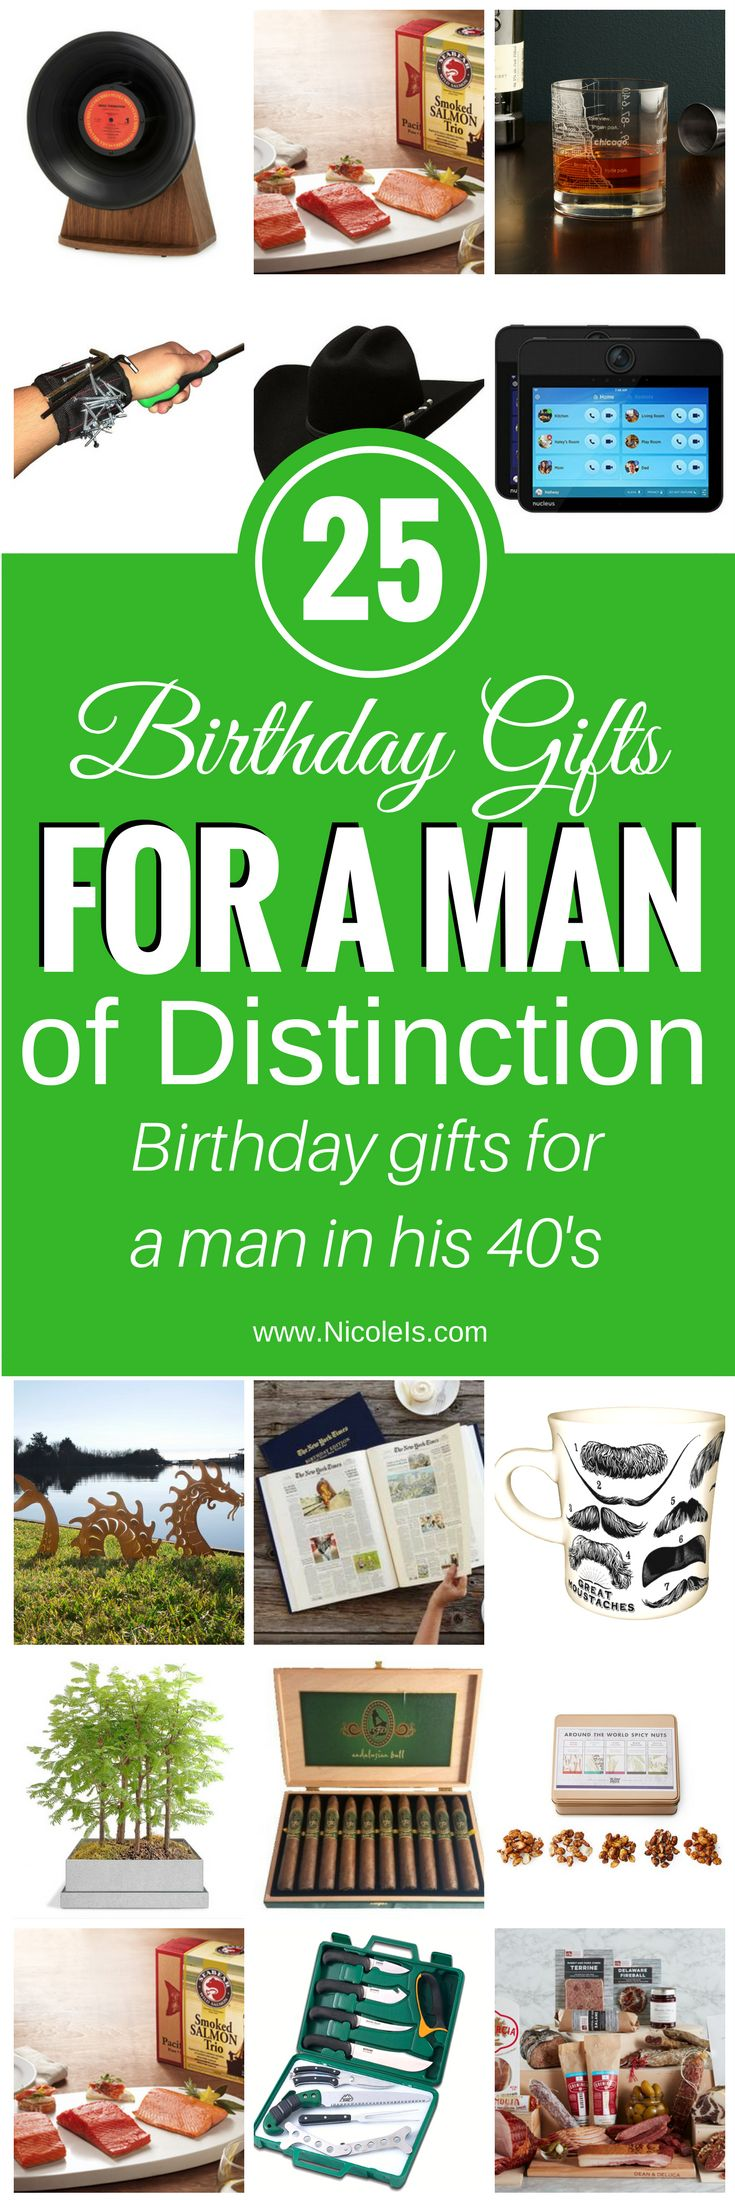 Gifts for Him | Birthday Gifts for Him | Anniversa…